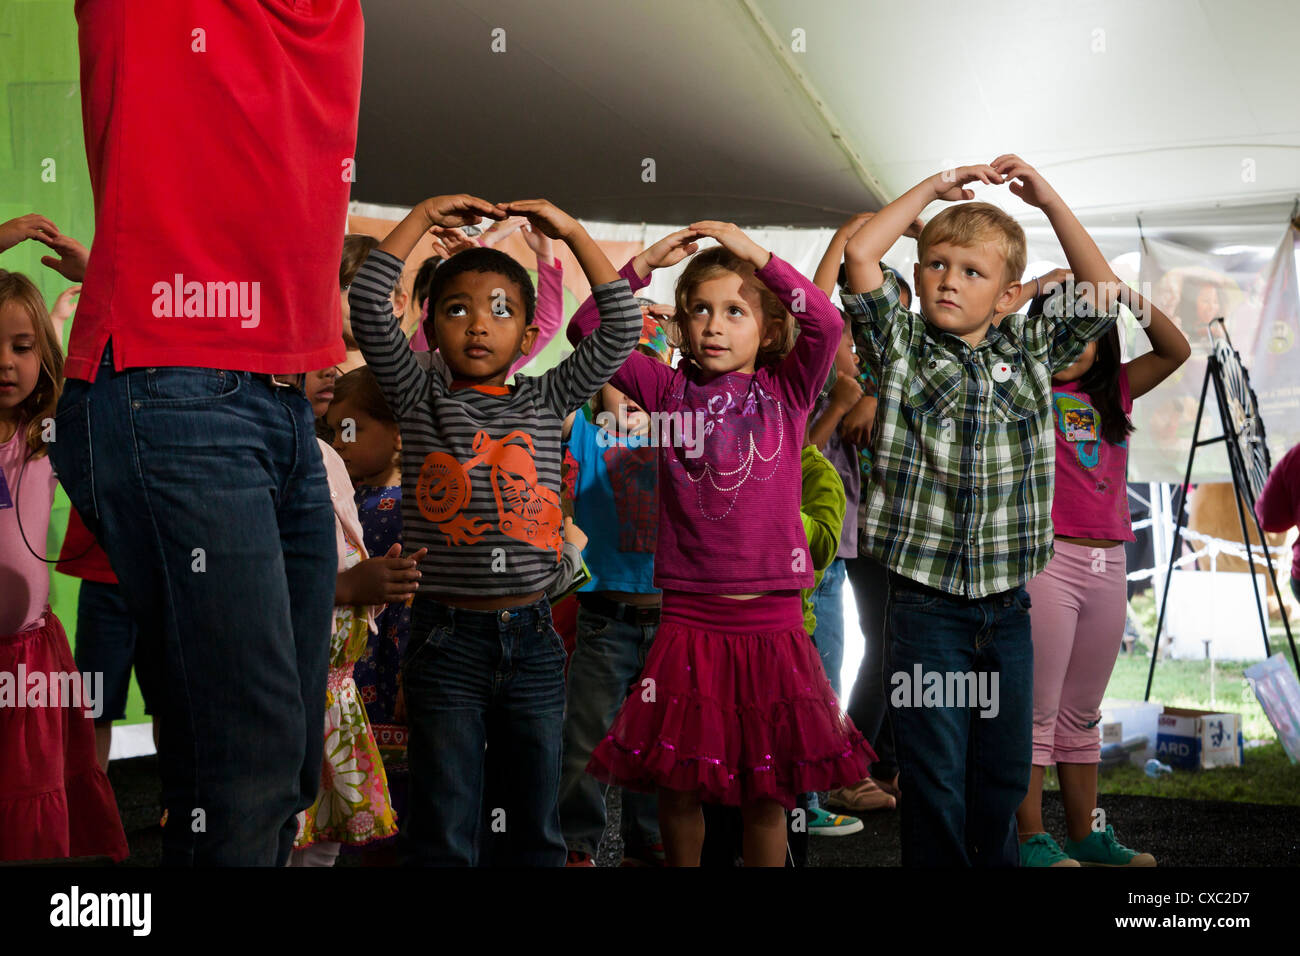 Children dancing on stage with an adult - USA - Stock Image